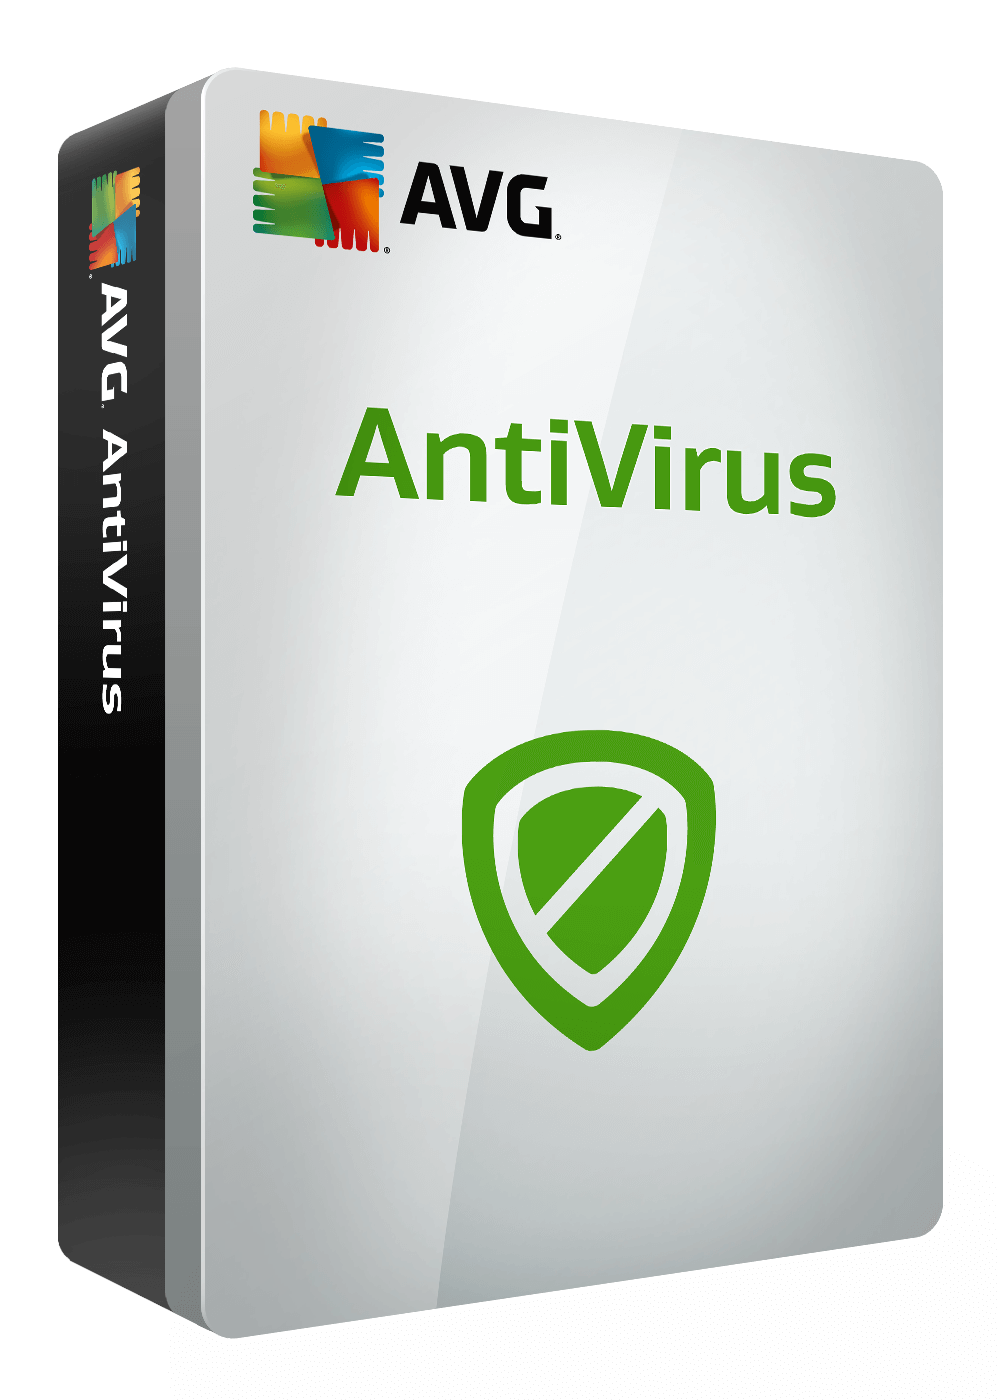 Advanced Threat Protection: Rely on AVG's Award-Winning Anti-Virus